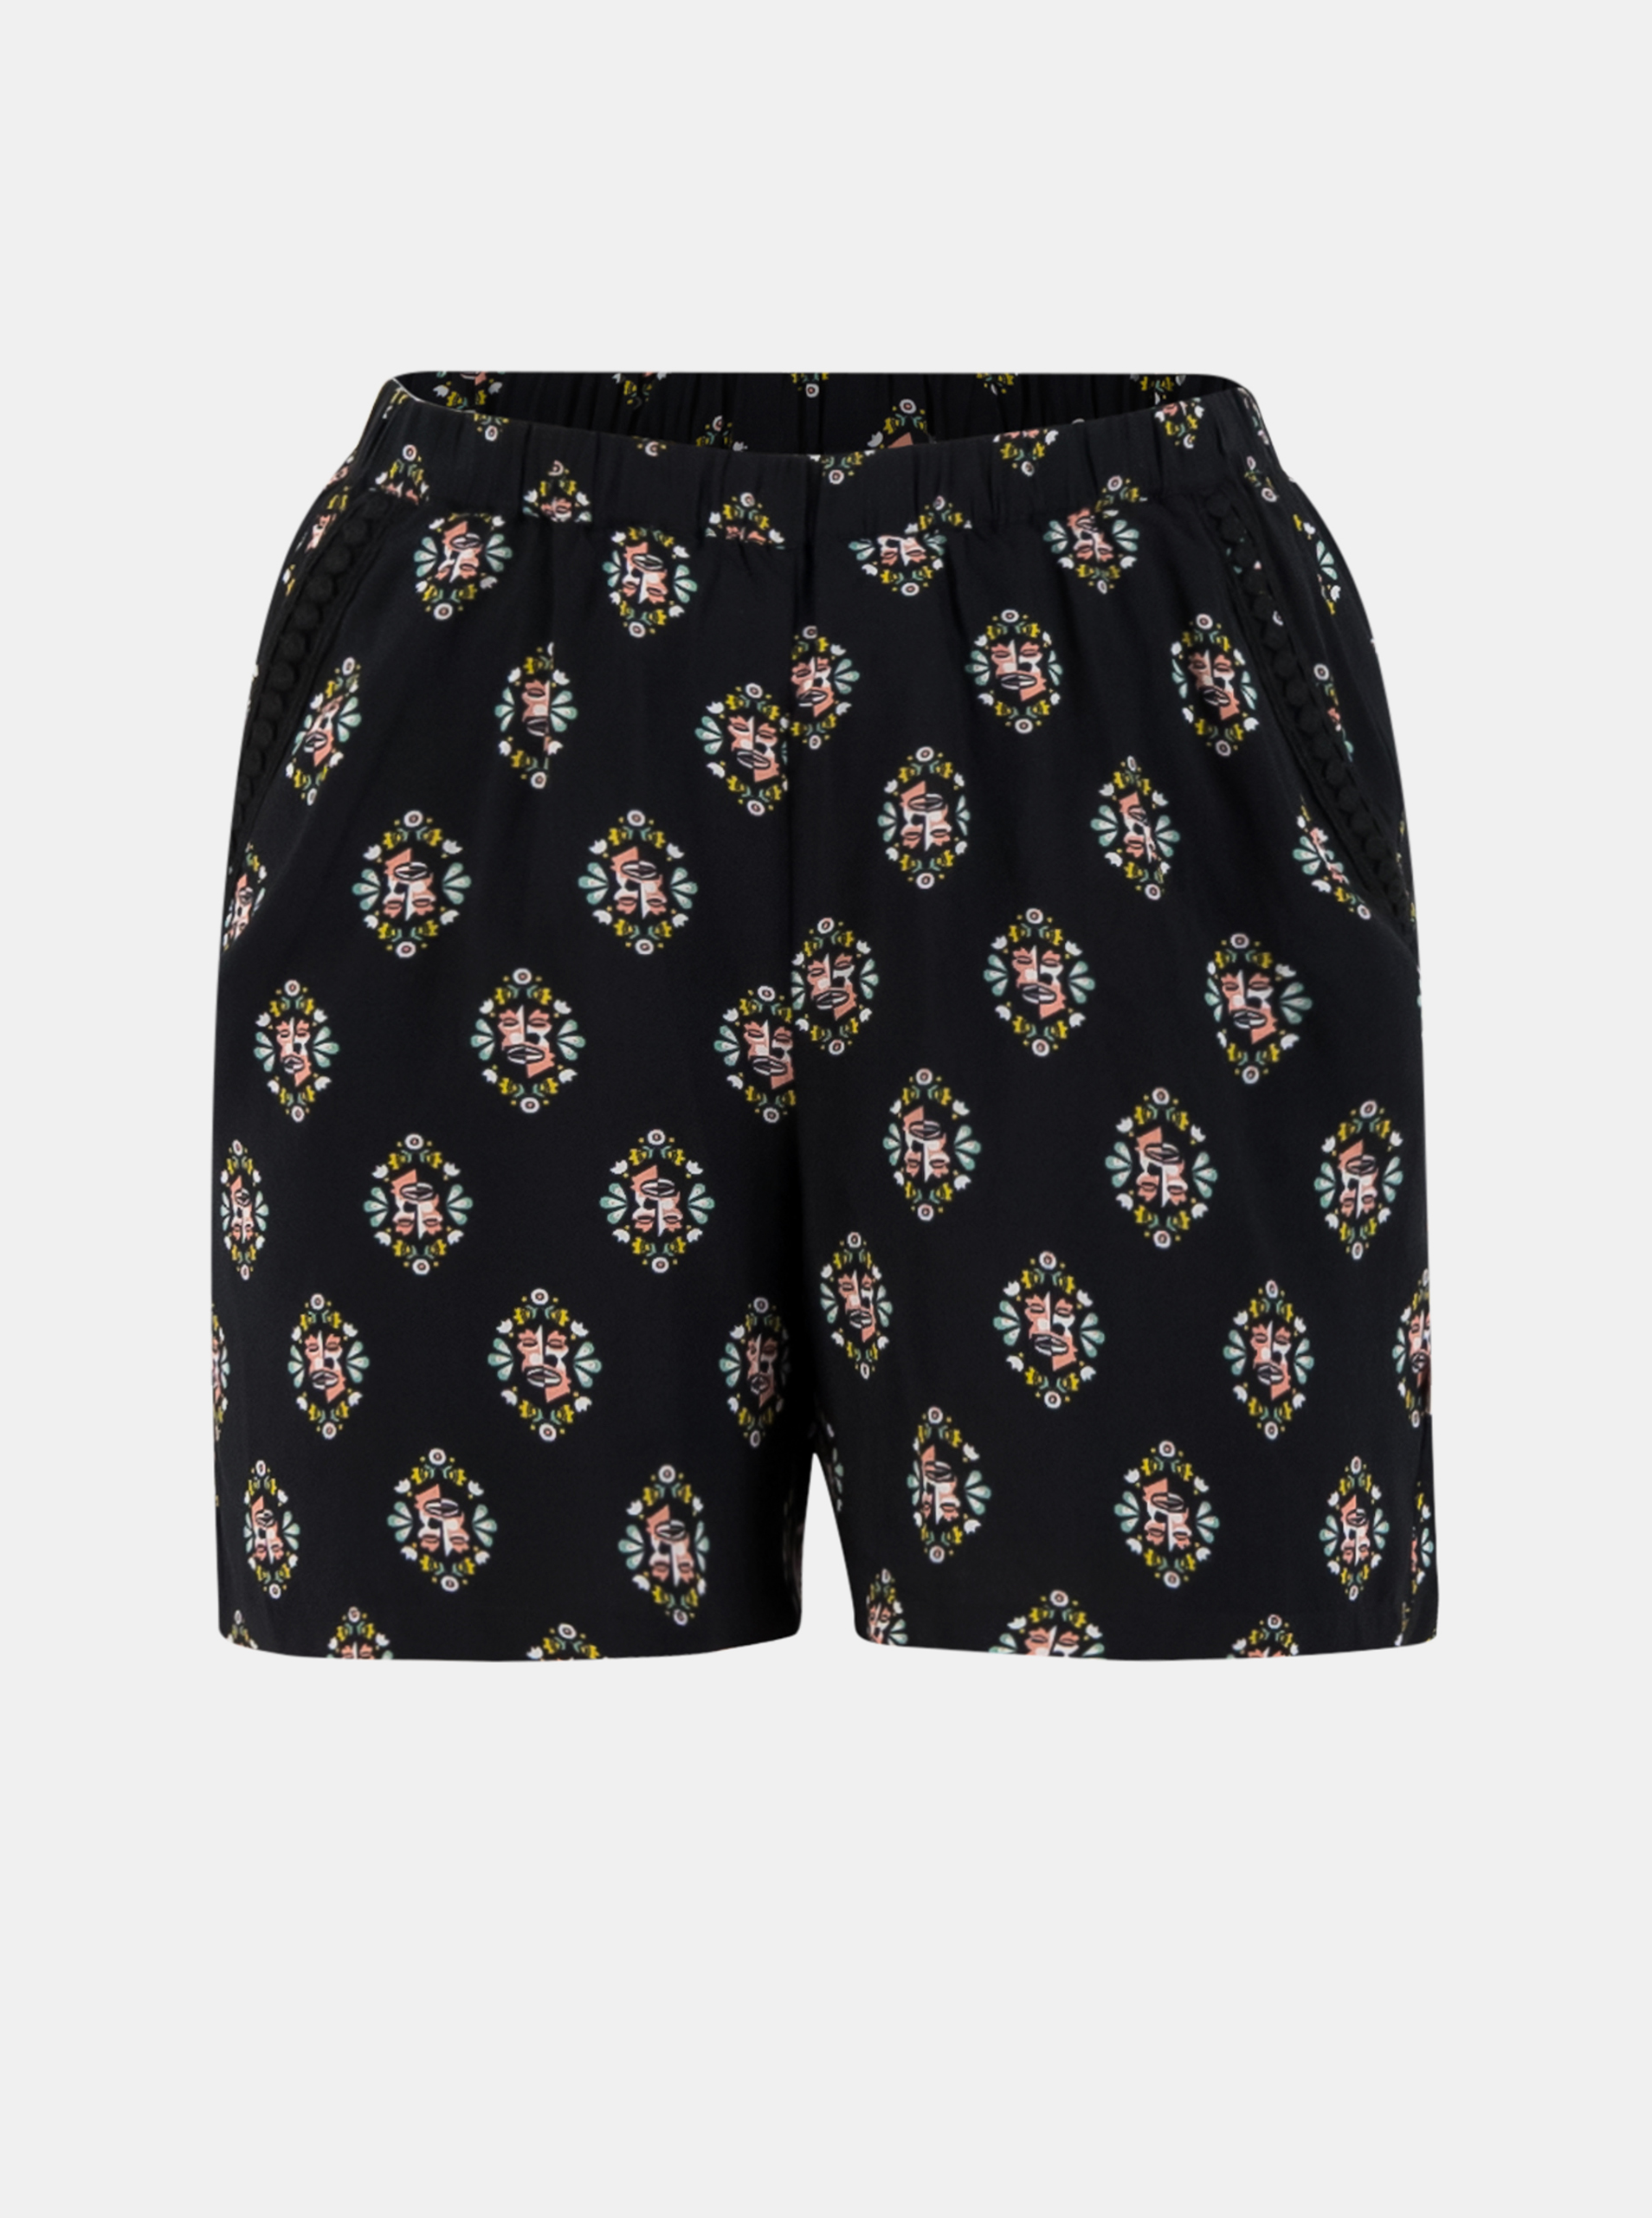 Blutsgeschwister black shorts with colourful motives